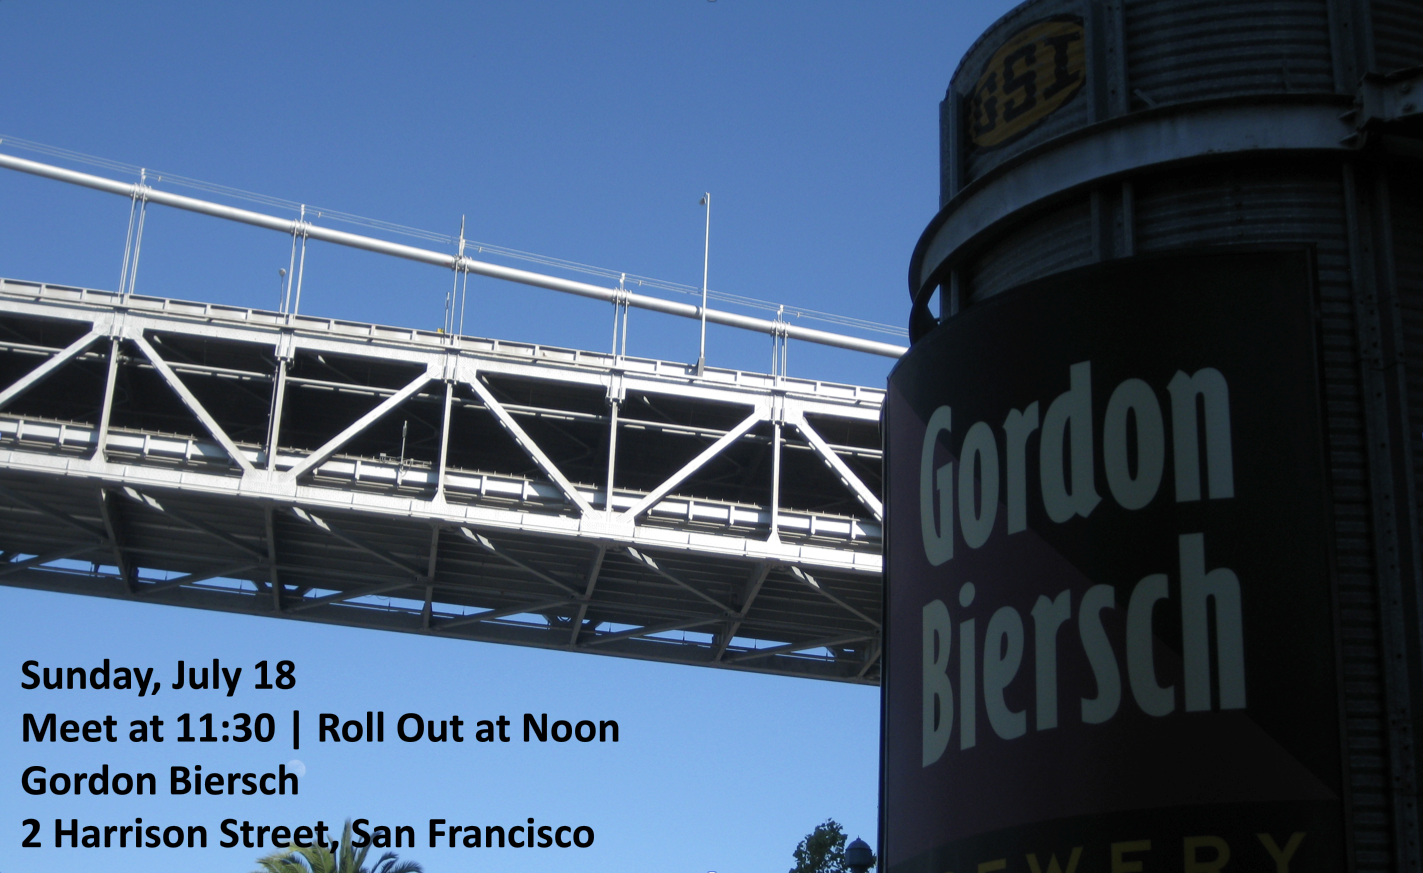 San Francisco – The Grand Cru